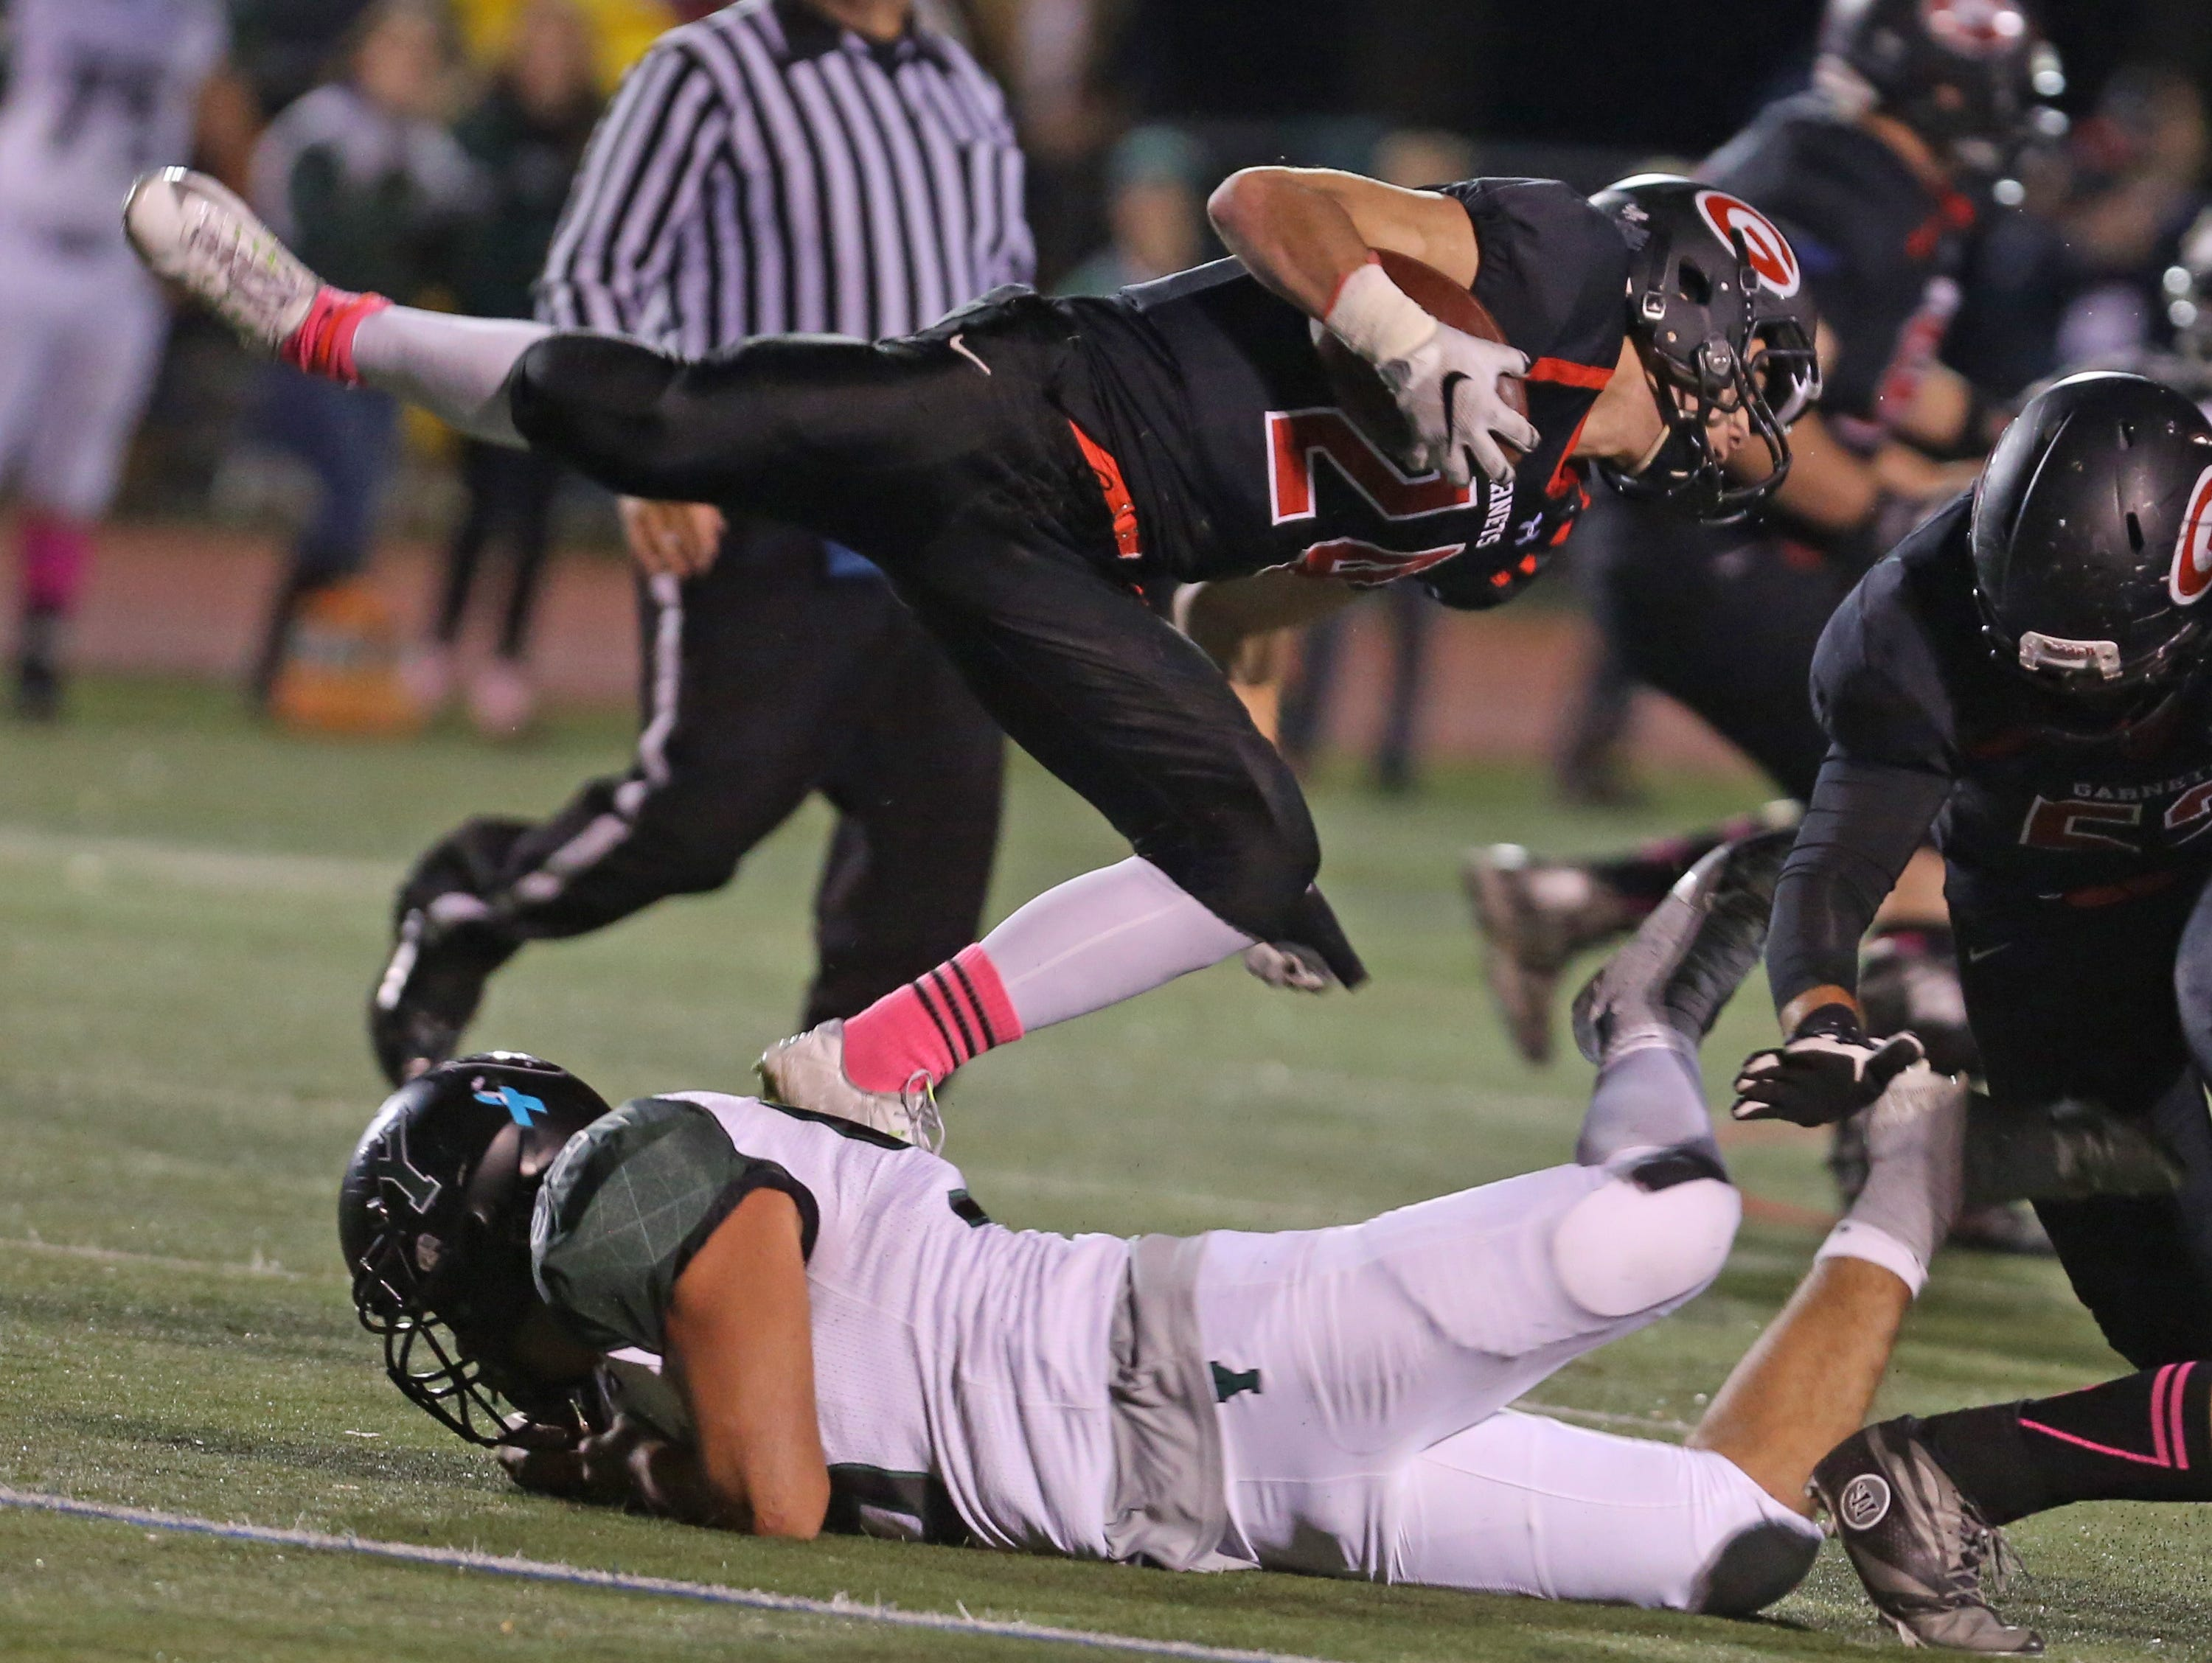 Rye's Jamie Chabot is brought down while rushing against Yorktown during a Class A semifinal football game against Rye at Rye High School Oct. 30, 2015.